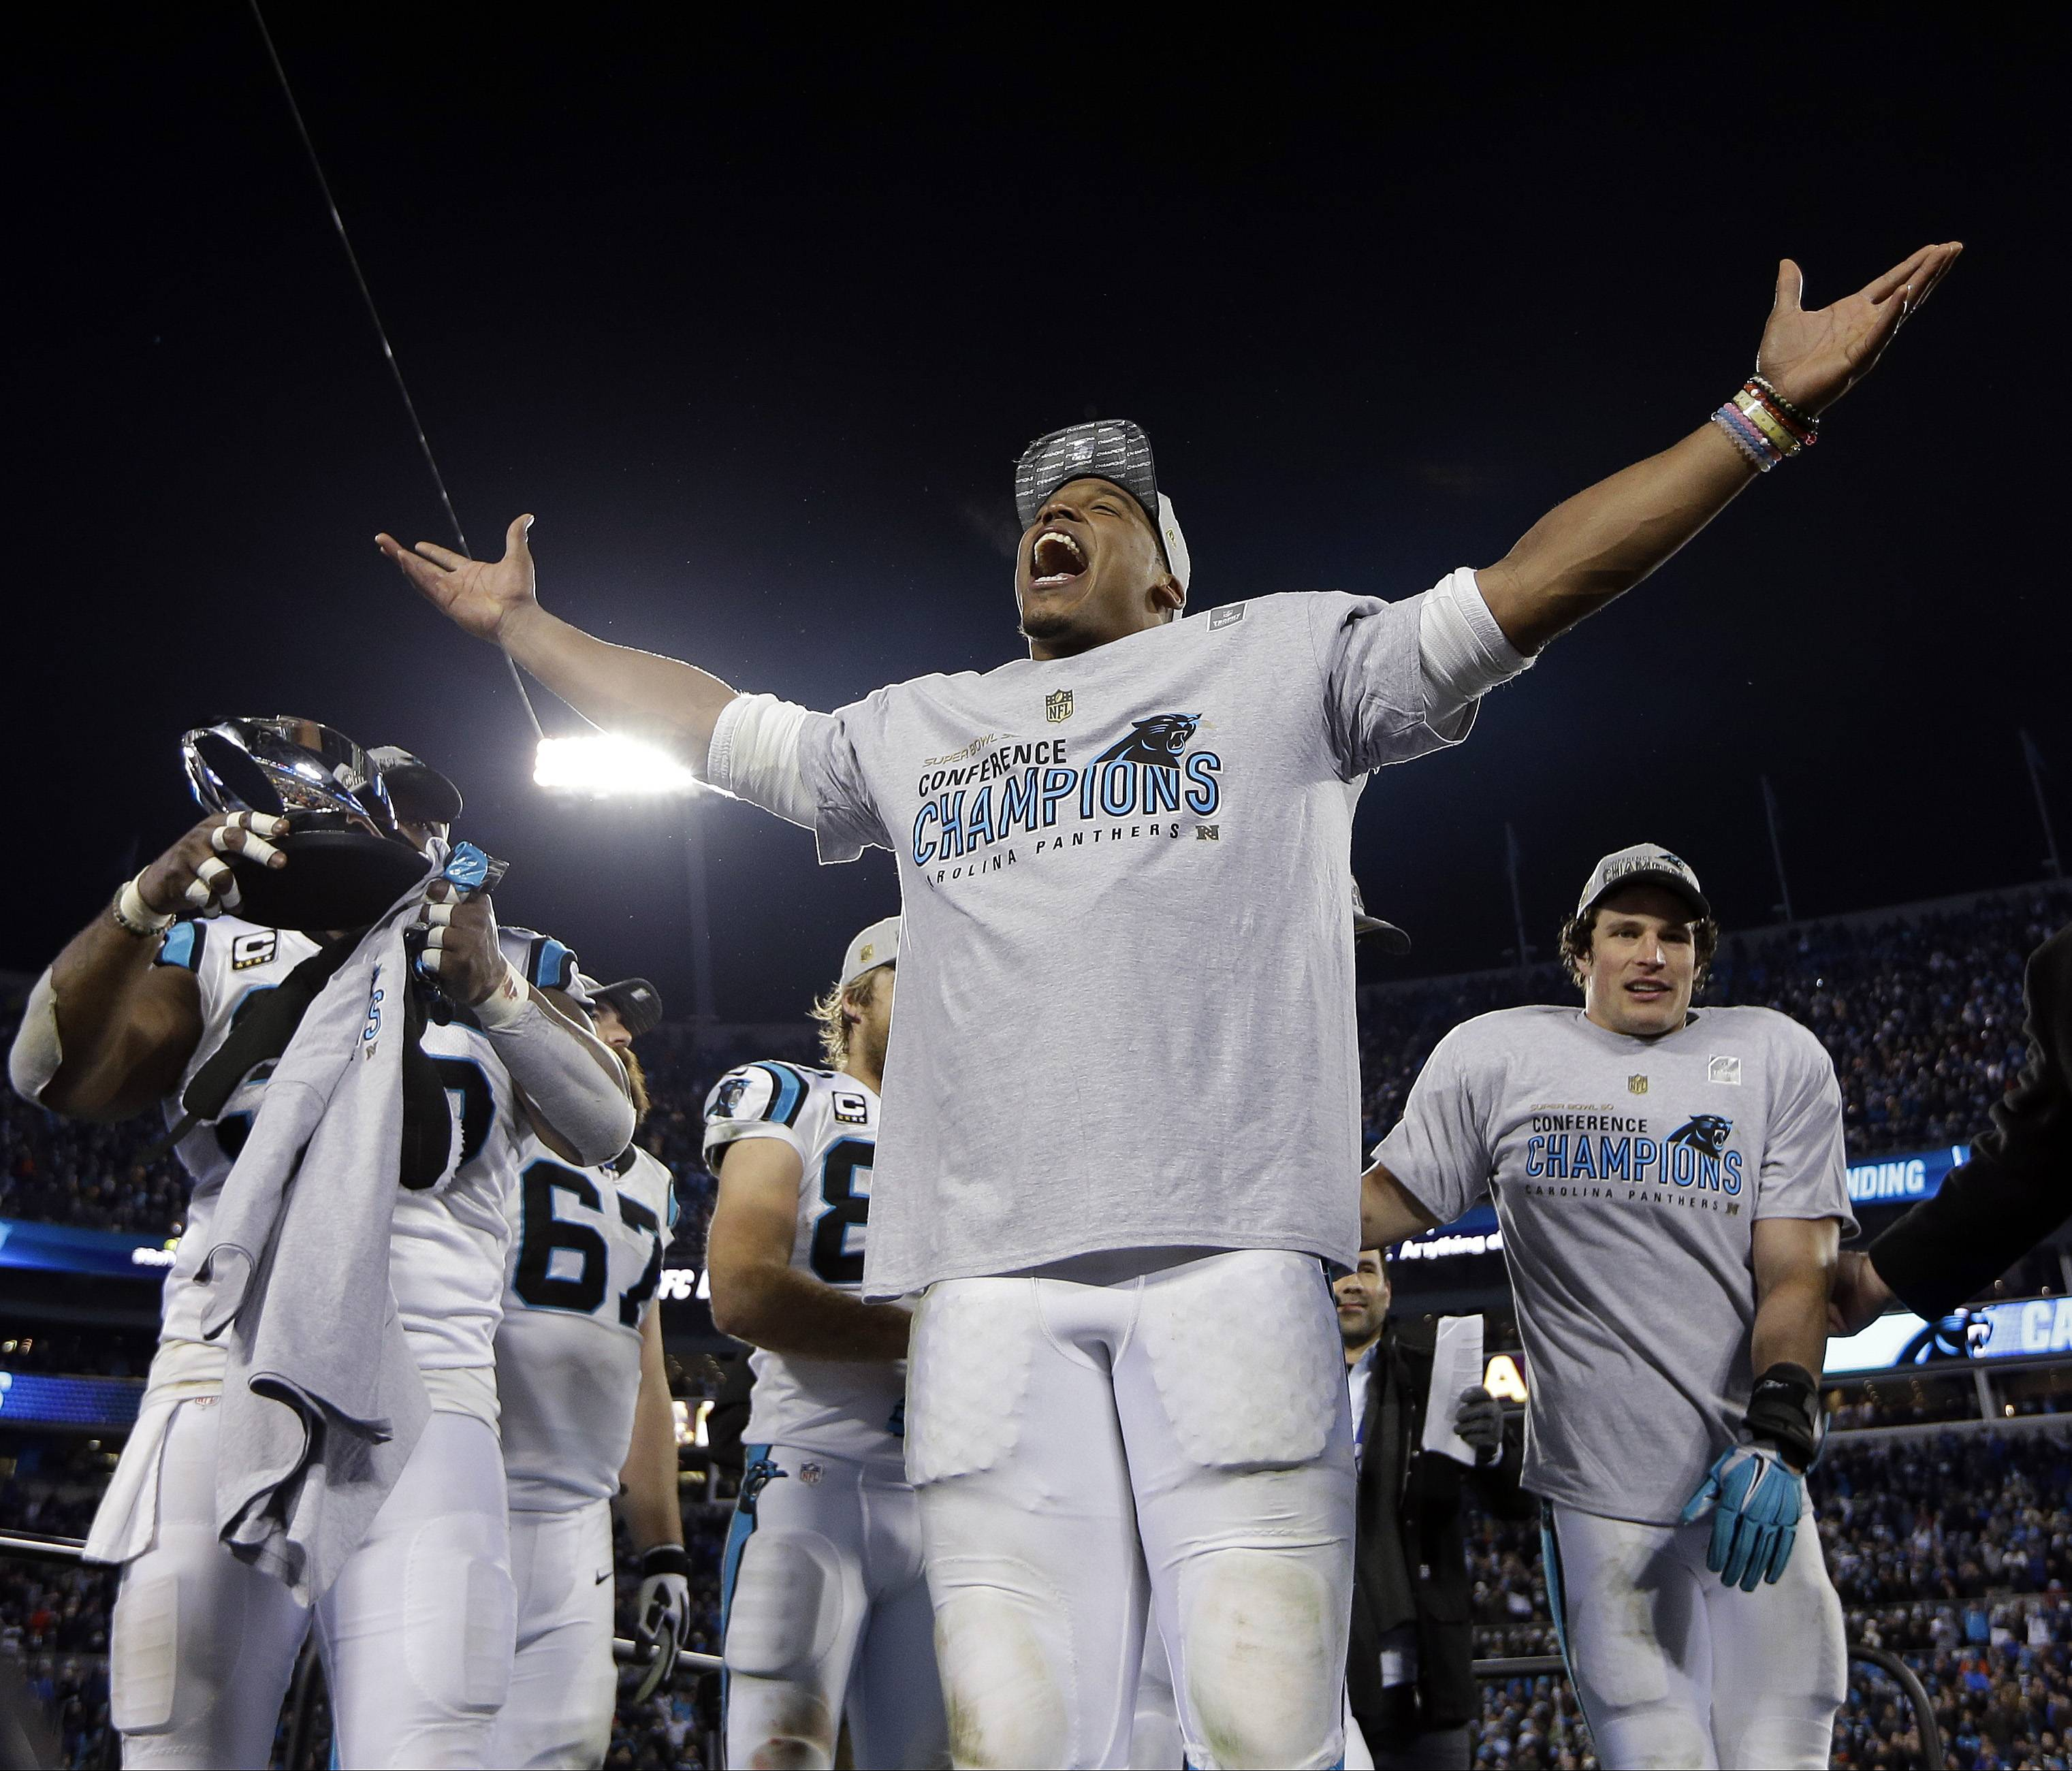 FILE - In this Jan. 24, 2016 file photo, Carolina Panthers' Cam Newton celebrates after the NFL football NFC championship game against the Arizona Cardinals in Charlotte, N.C. Newton is wearing Lokai silicone bead bracelets with a bit of water from Mount Everest in one of the beads and a dab of mud from the Dead Sea in another, aimed at achieving the lofty goal of inner balance by honoring the highs and lows of life. (AP Photo/David J. Phillip, File)